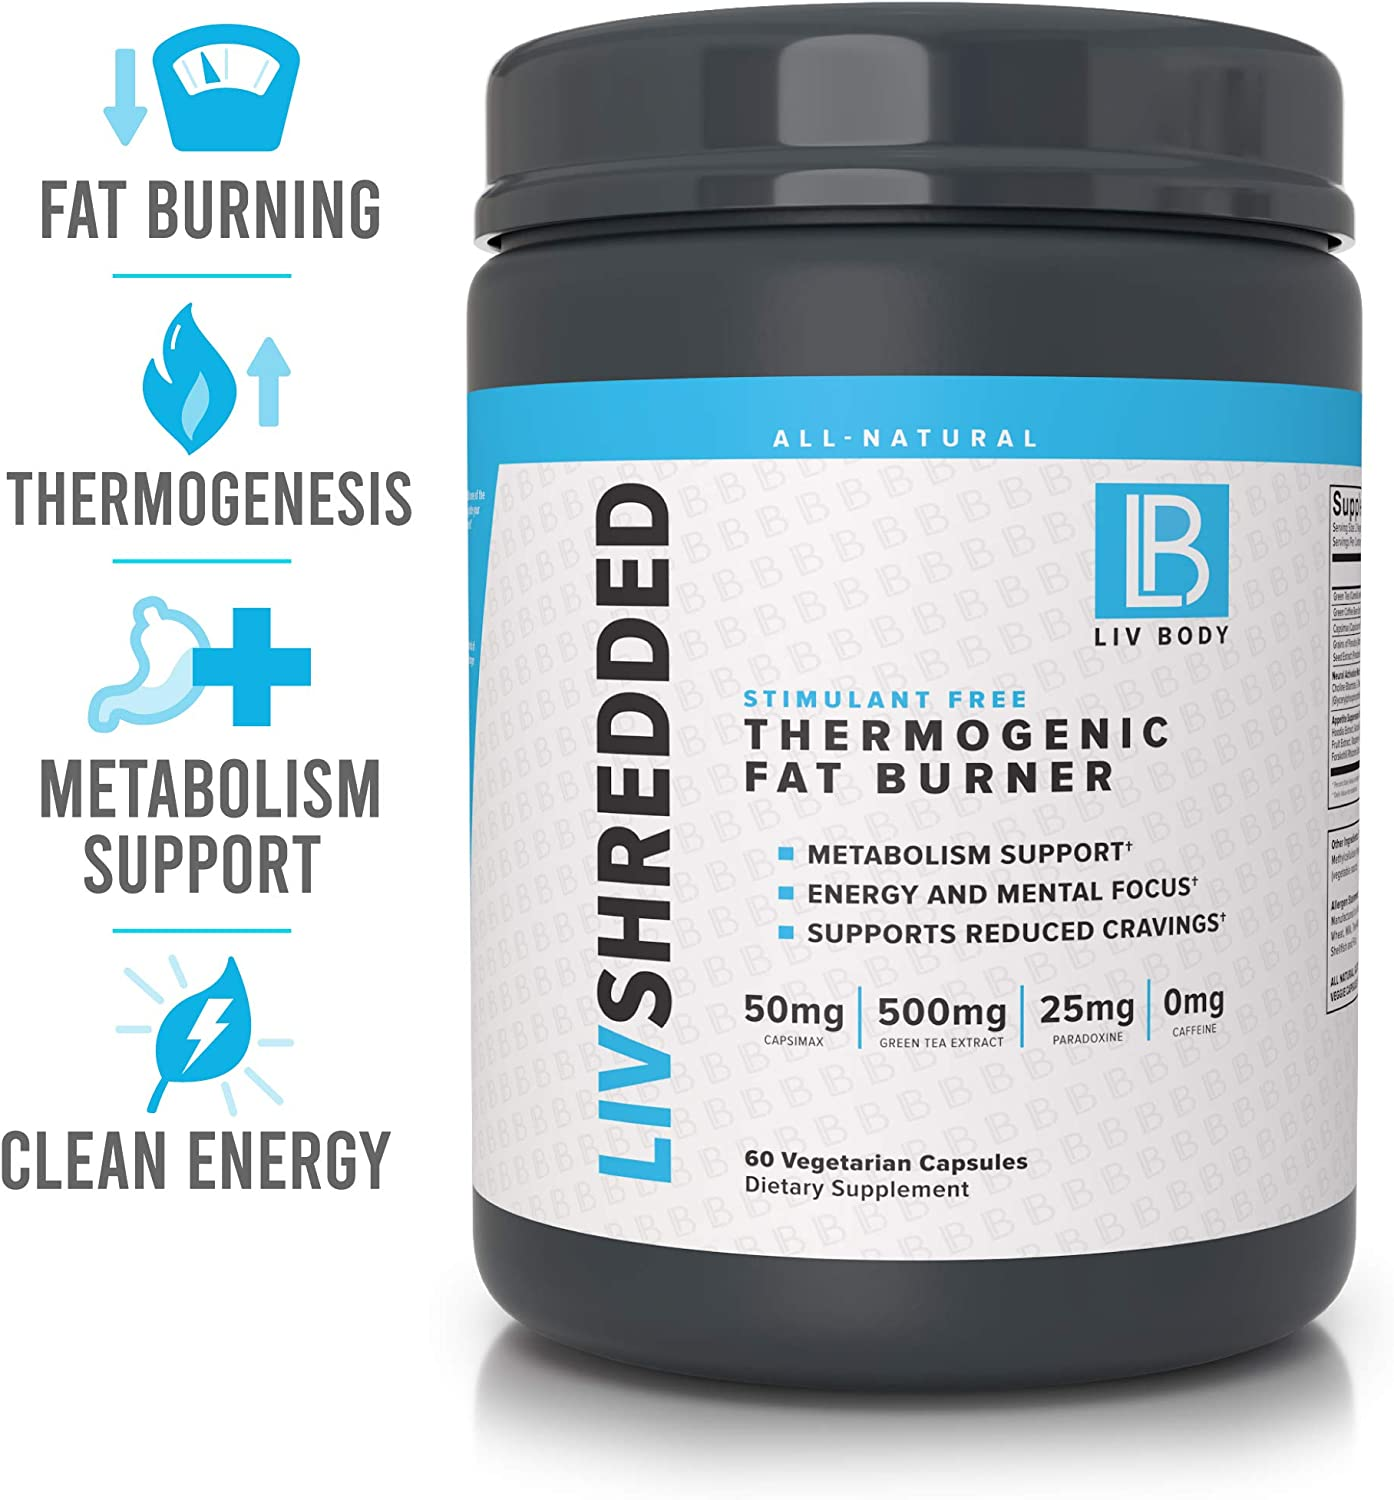 LIV Body LIV Shredded Stimulant Free Thermogenic Fat Burner Metabolism Support, Reduces Cravings Energy and Mental Focus 60 Vegetarian Capsules